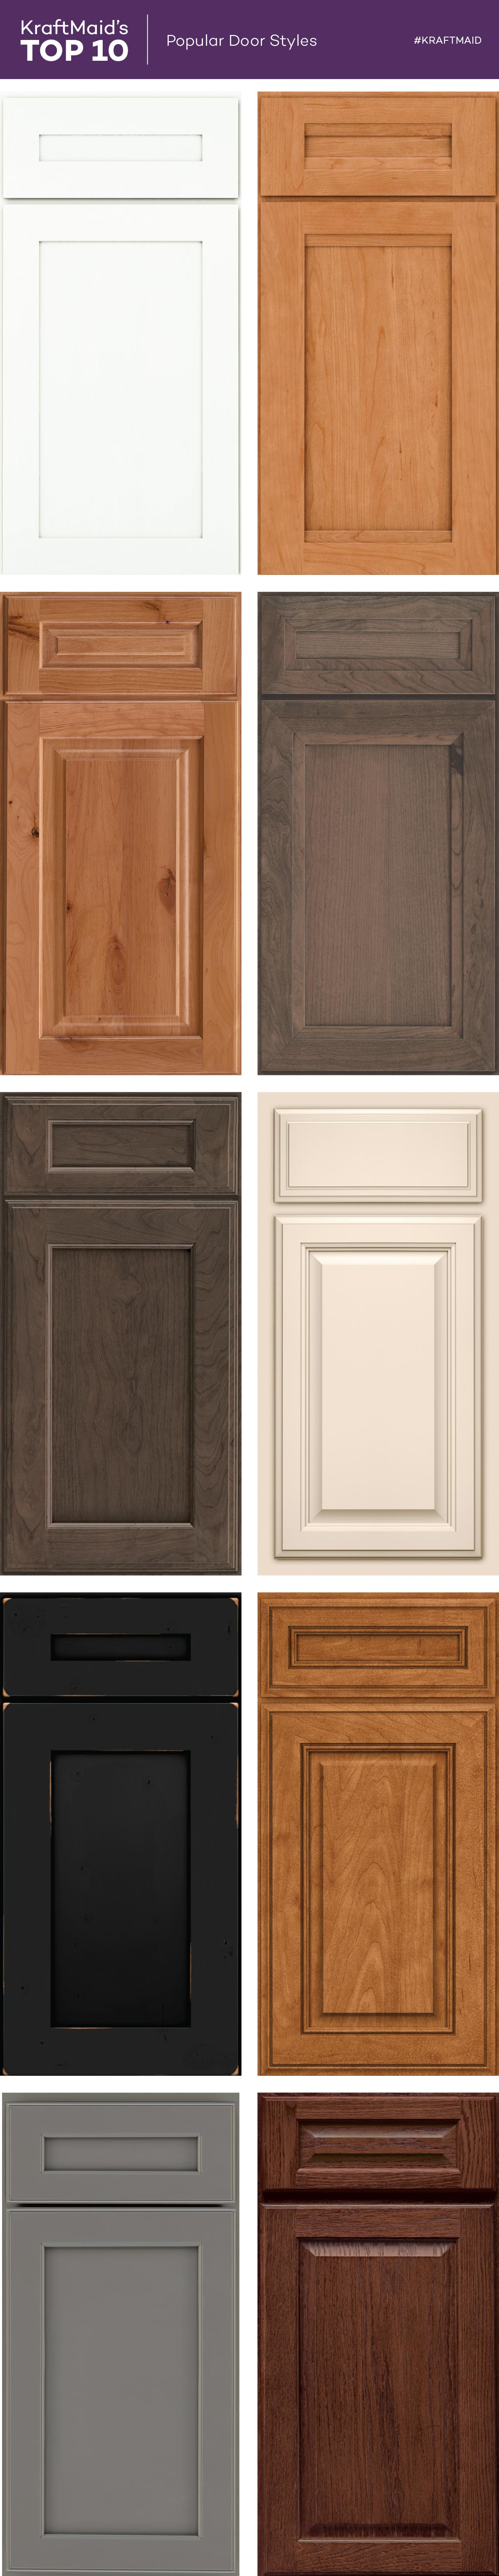 shaker style cabinet doors. KraftMaid® Has A Kitchen Cabinet Door Style For Every Taste, Including Shaker And Transitional Doors. While Doors Have Remained C